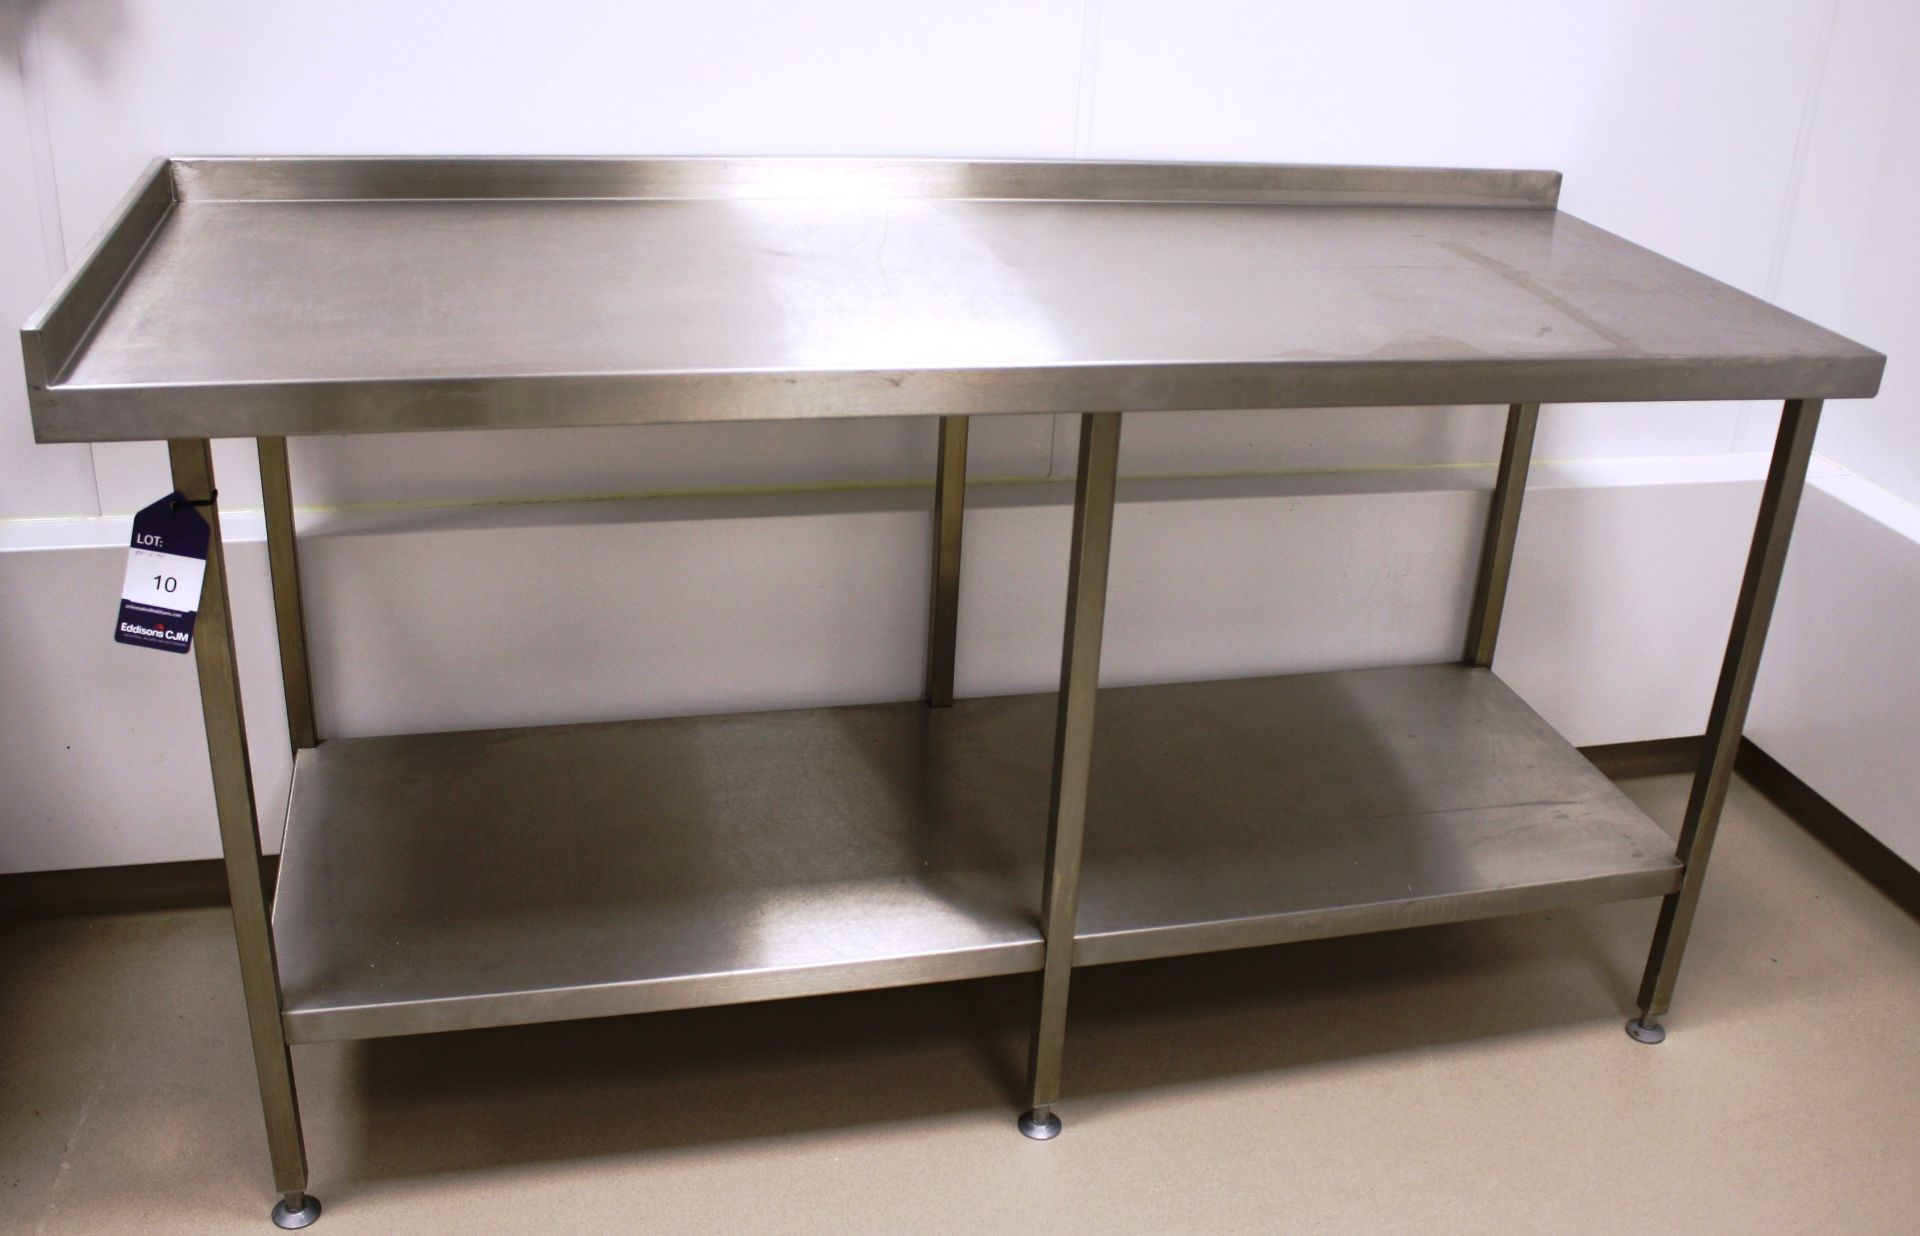 Lot 10 - Stainless Steel Two Tier Bench 1800 x 700